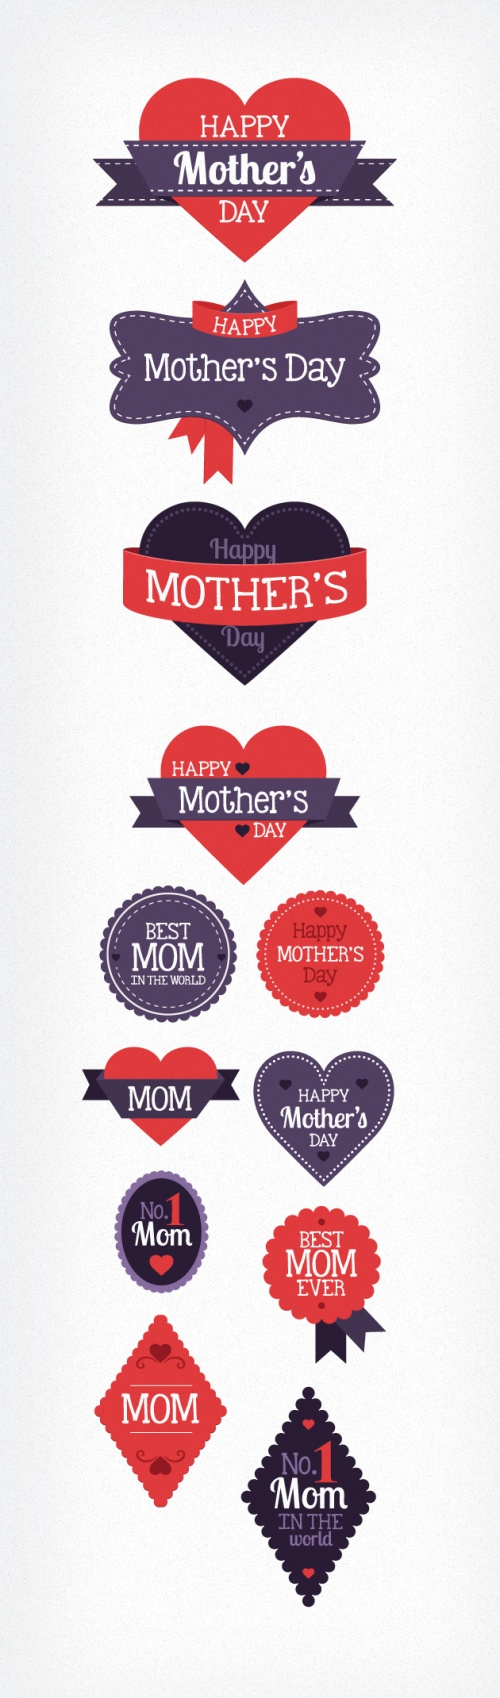 Designtnt - Mothers Day Vector Elements